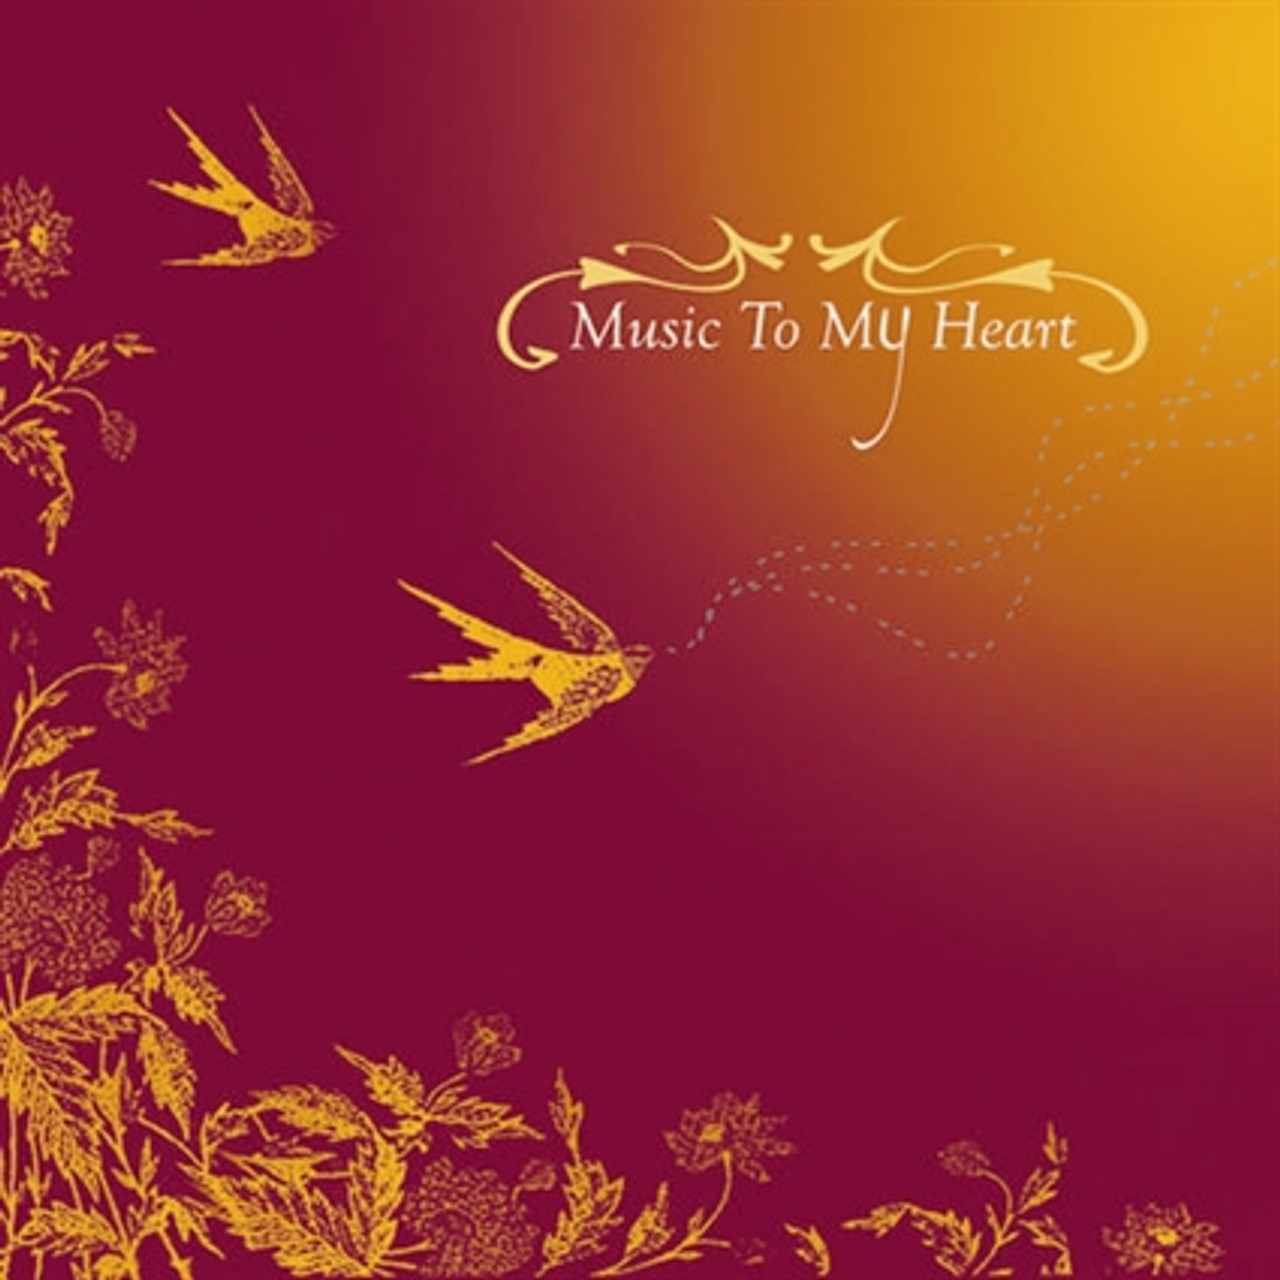 Music To My Heart Download Music By John Adorney Quotes By Prem